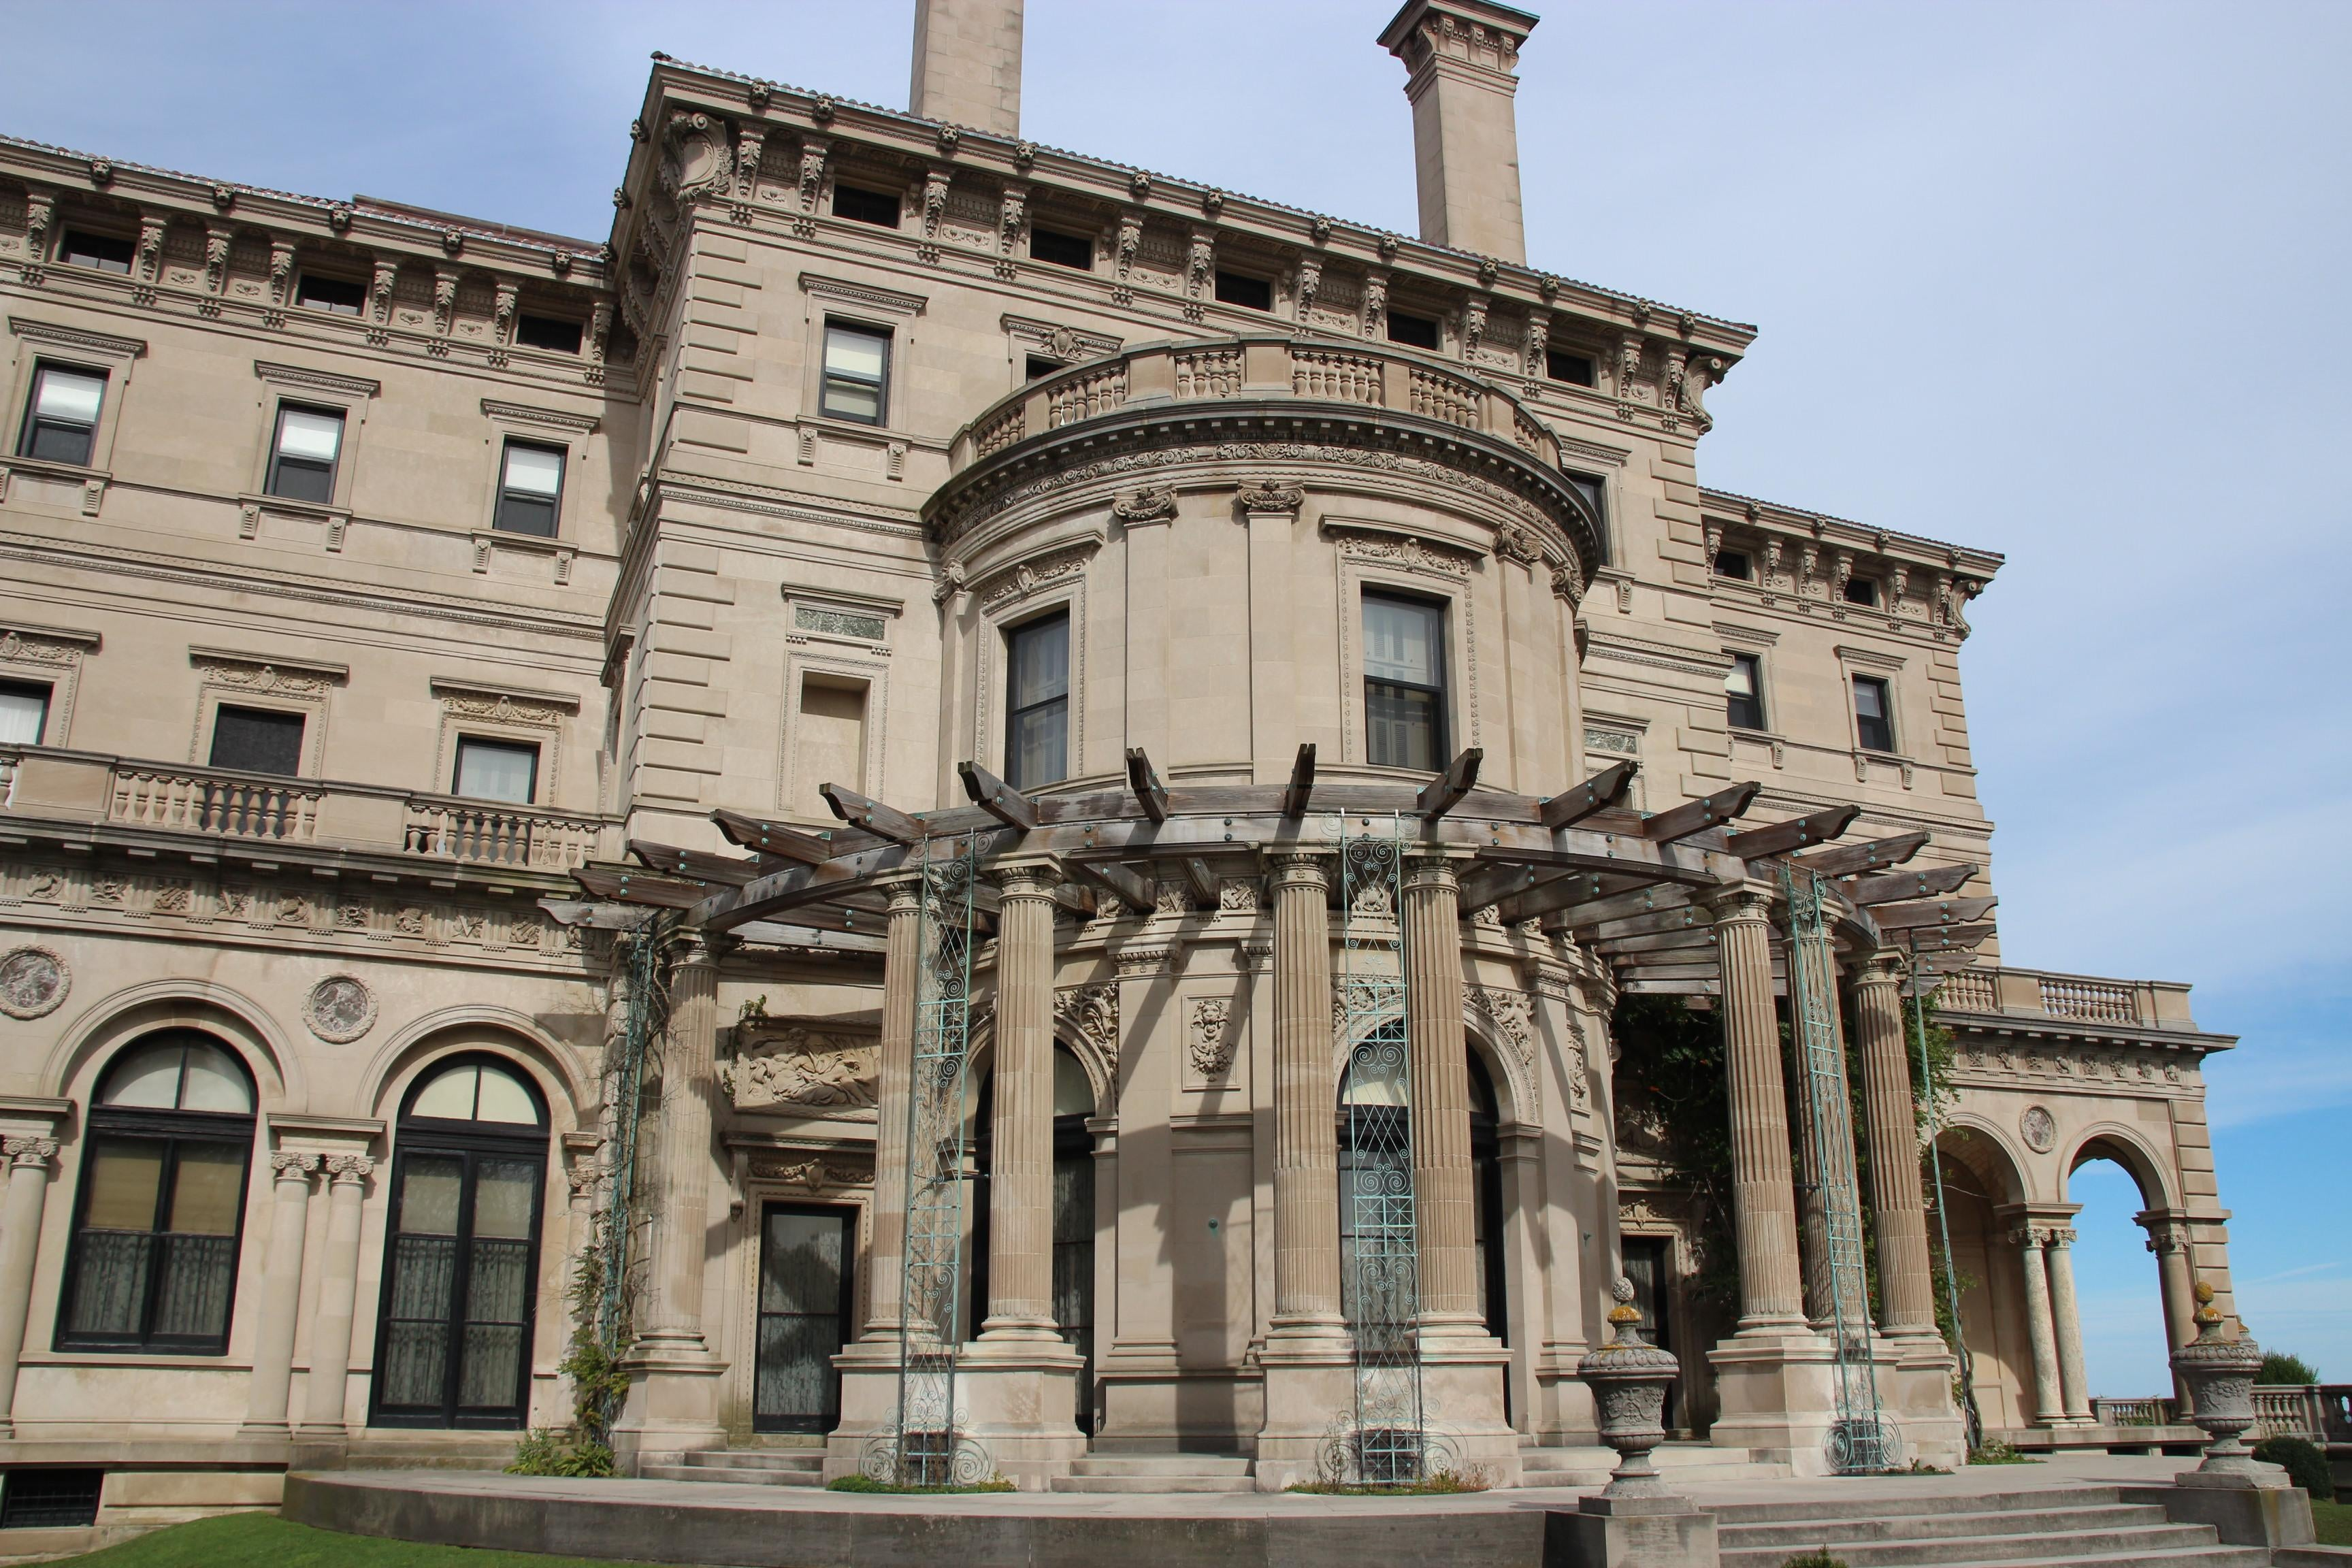 Arquitectura romana antigua en The Breakers Mansion